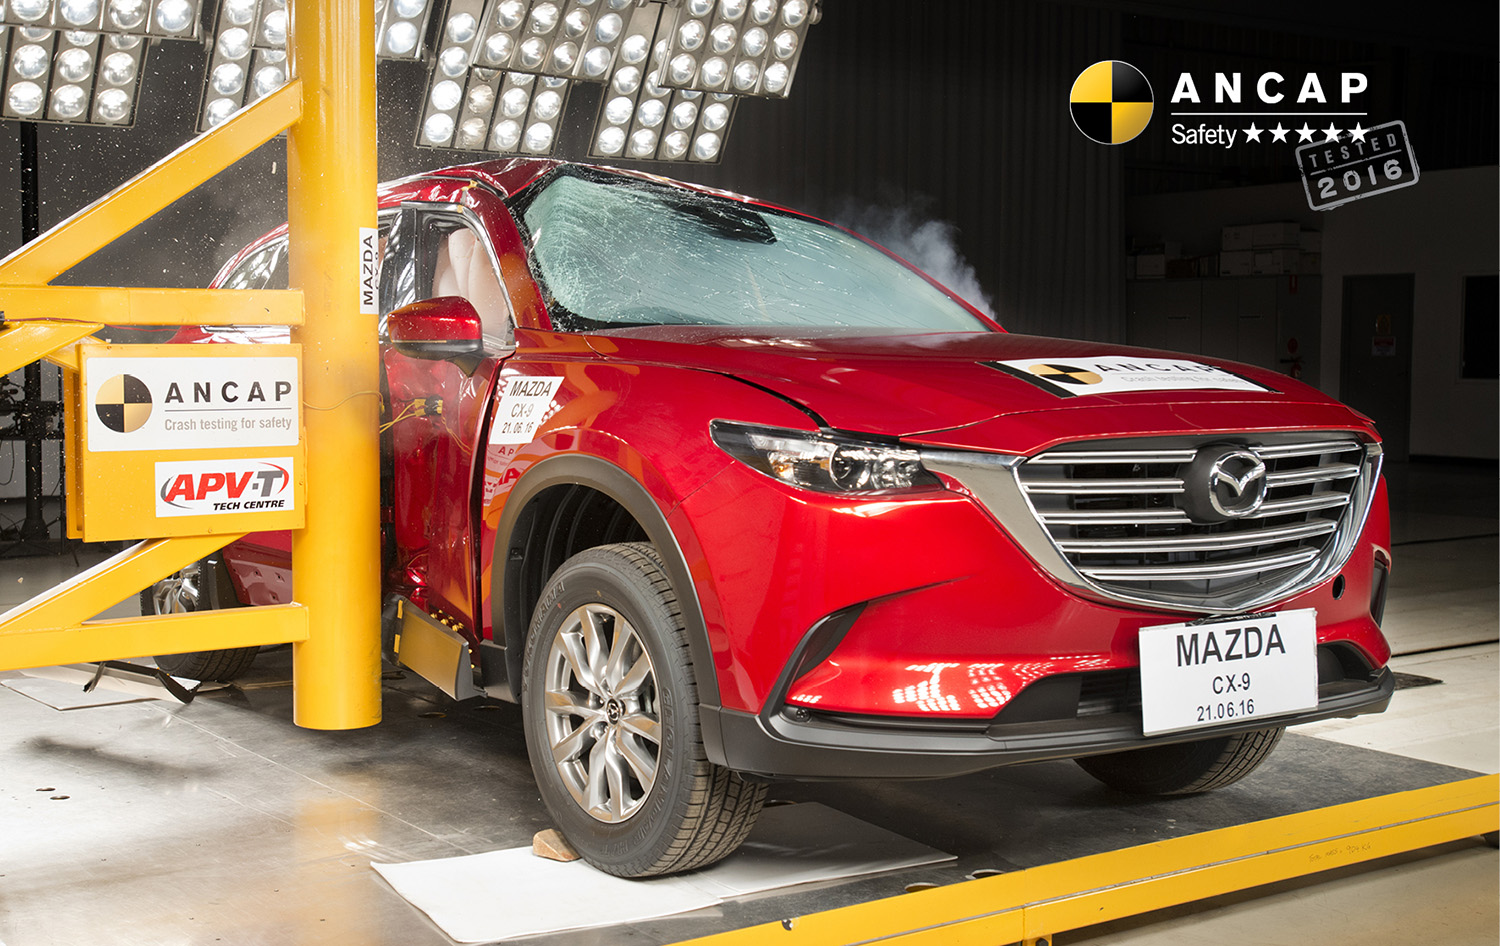 2016 mazda cx 9 scores five star ancap safety rating photos caradvice. Black Bedroom Furniture Sets. Home Design Ideas